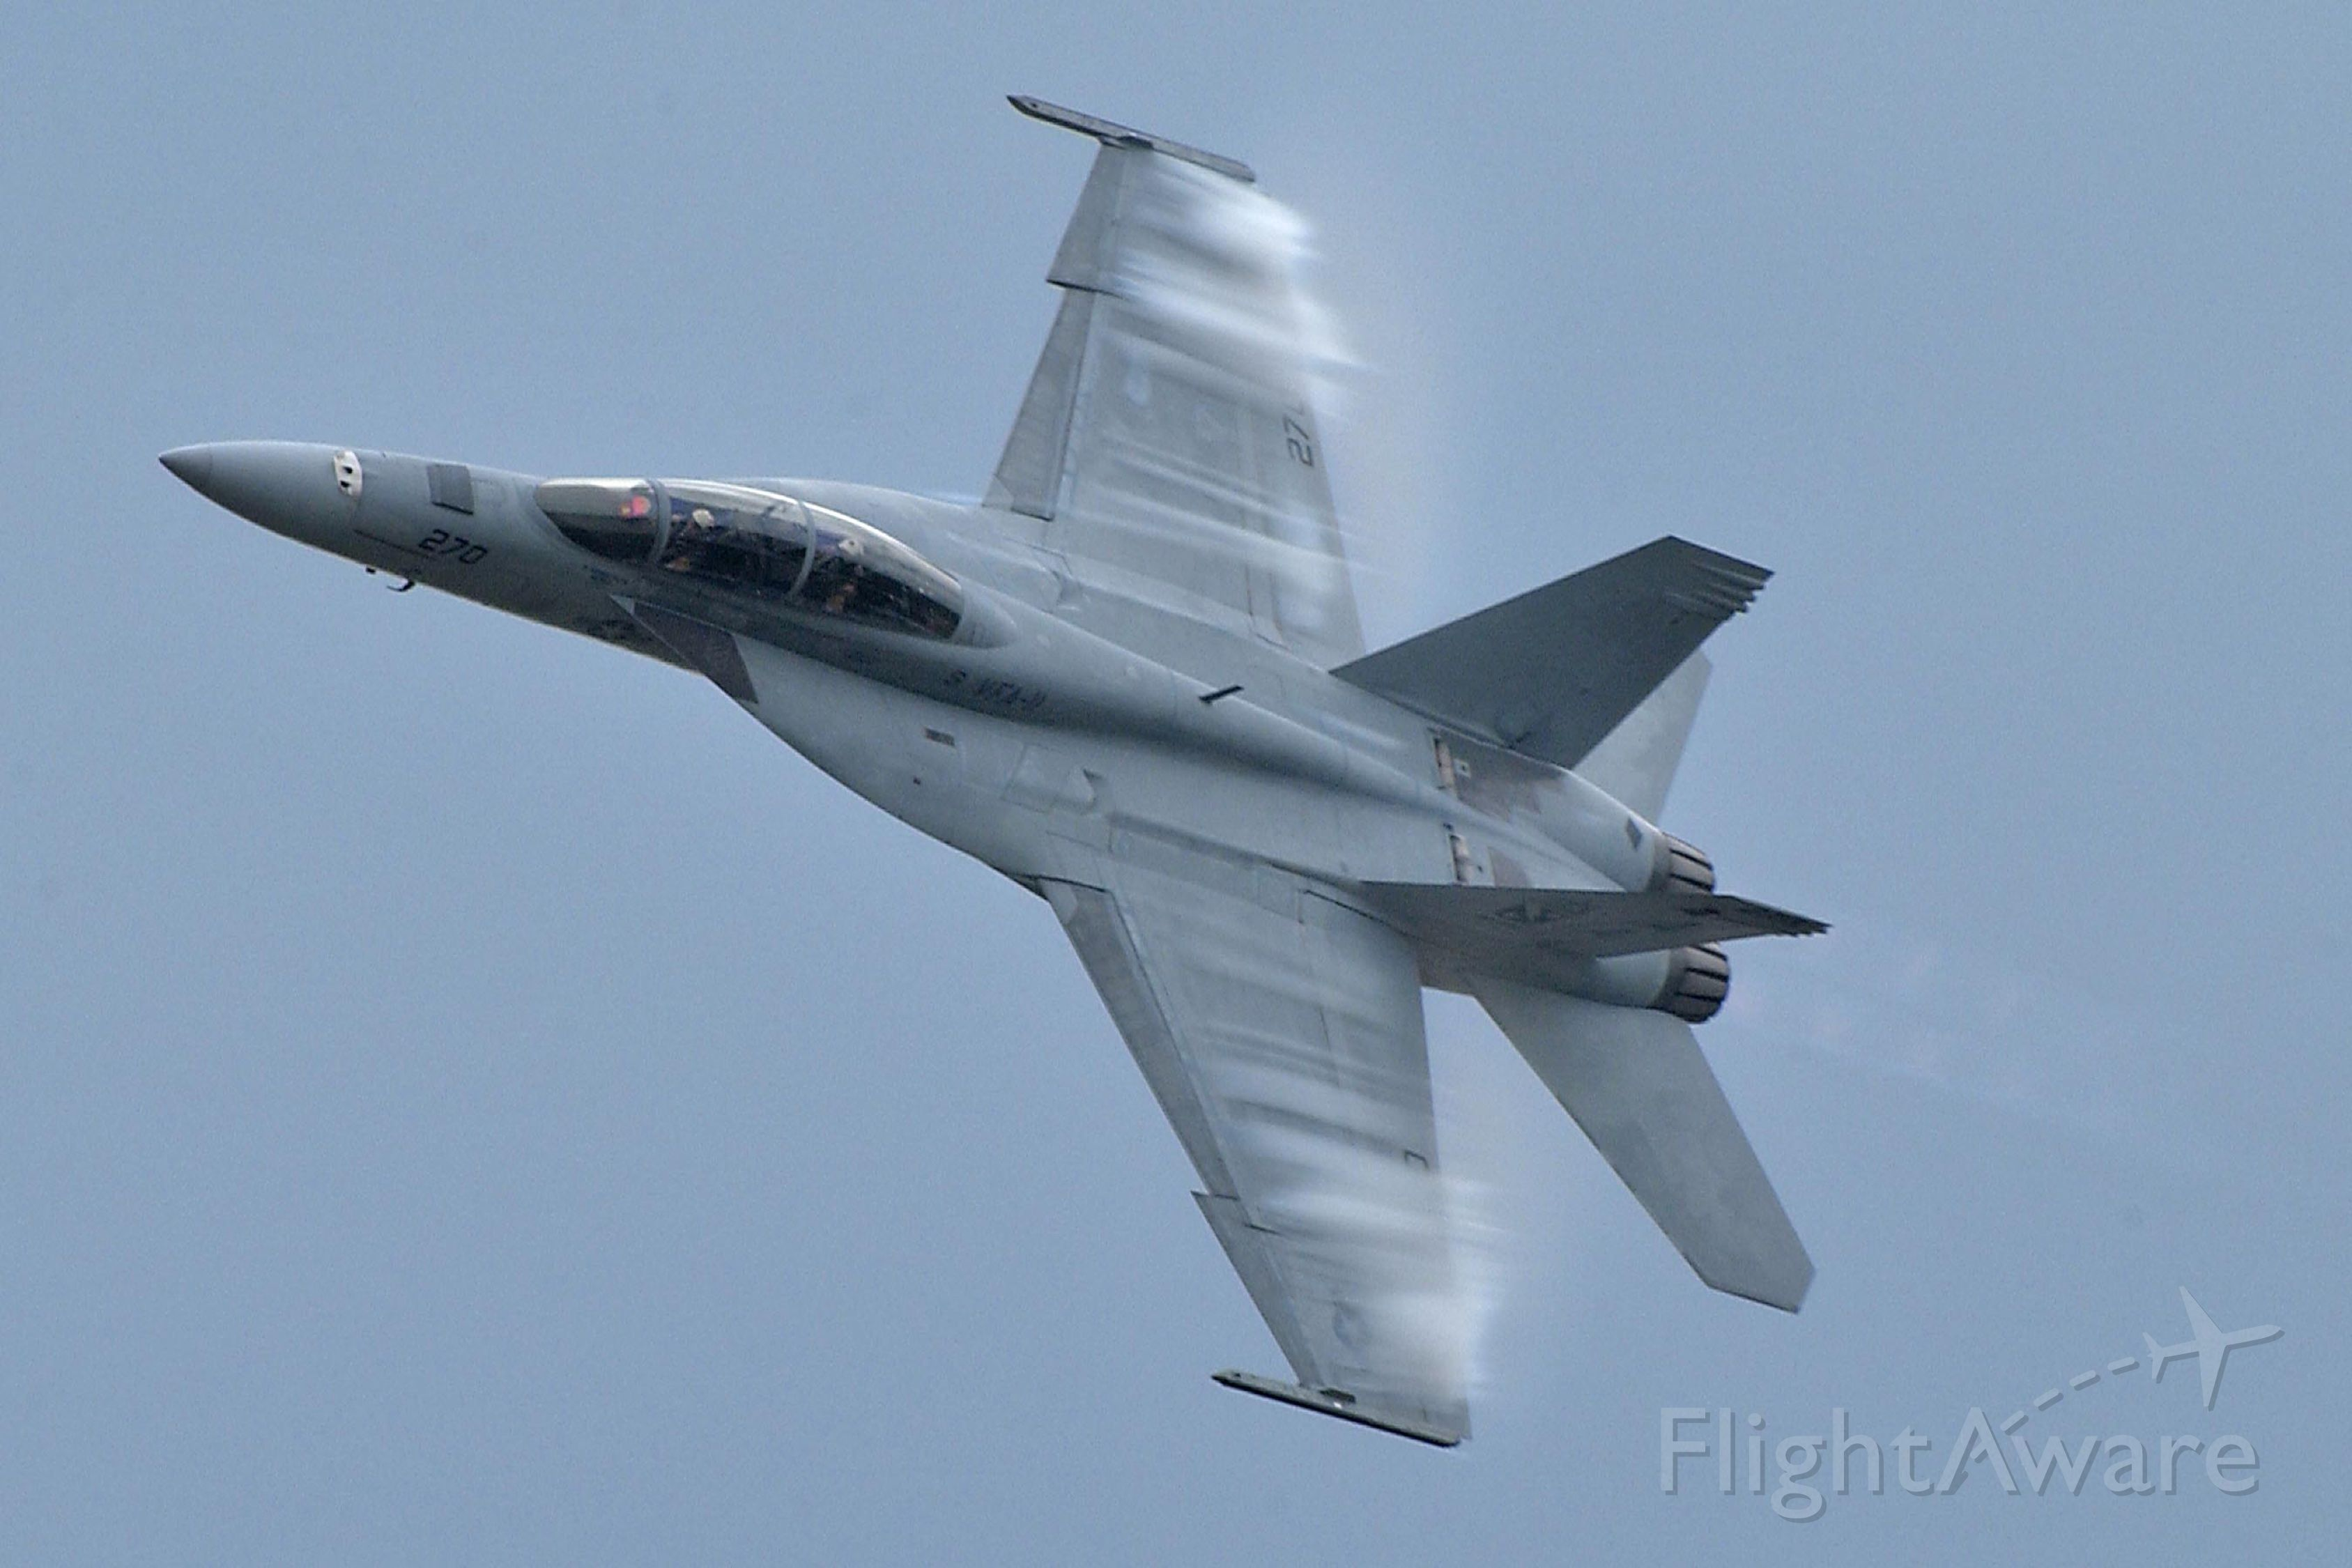 — — - F-18 In a high g turn at the Geneseo,NY Airshow